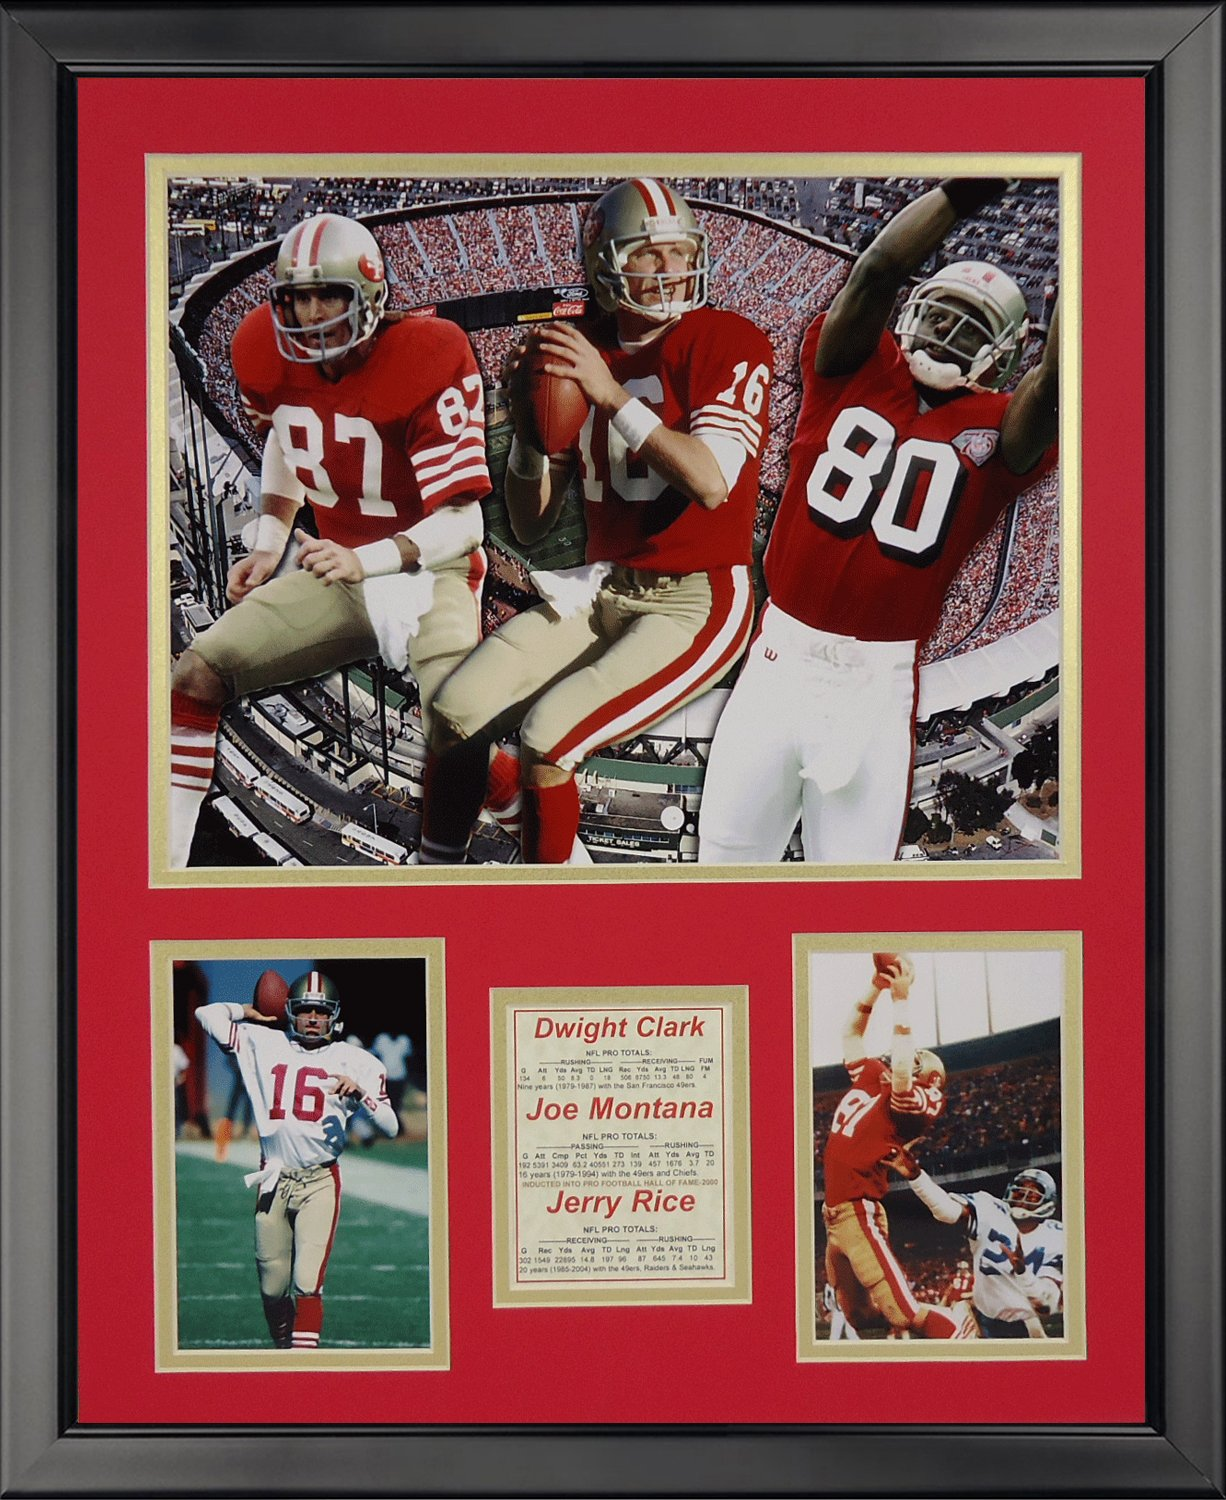 Legends Never Die San Francisco 49ers 1980s Big Three Framed Photo Collage, 16 x 20 16 x 20 19641A